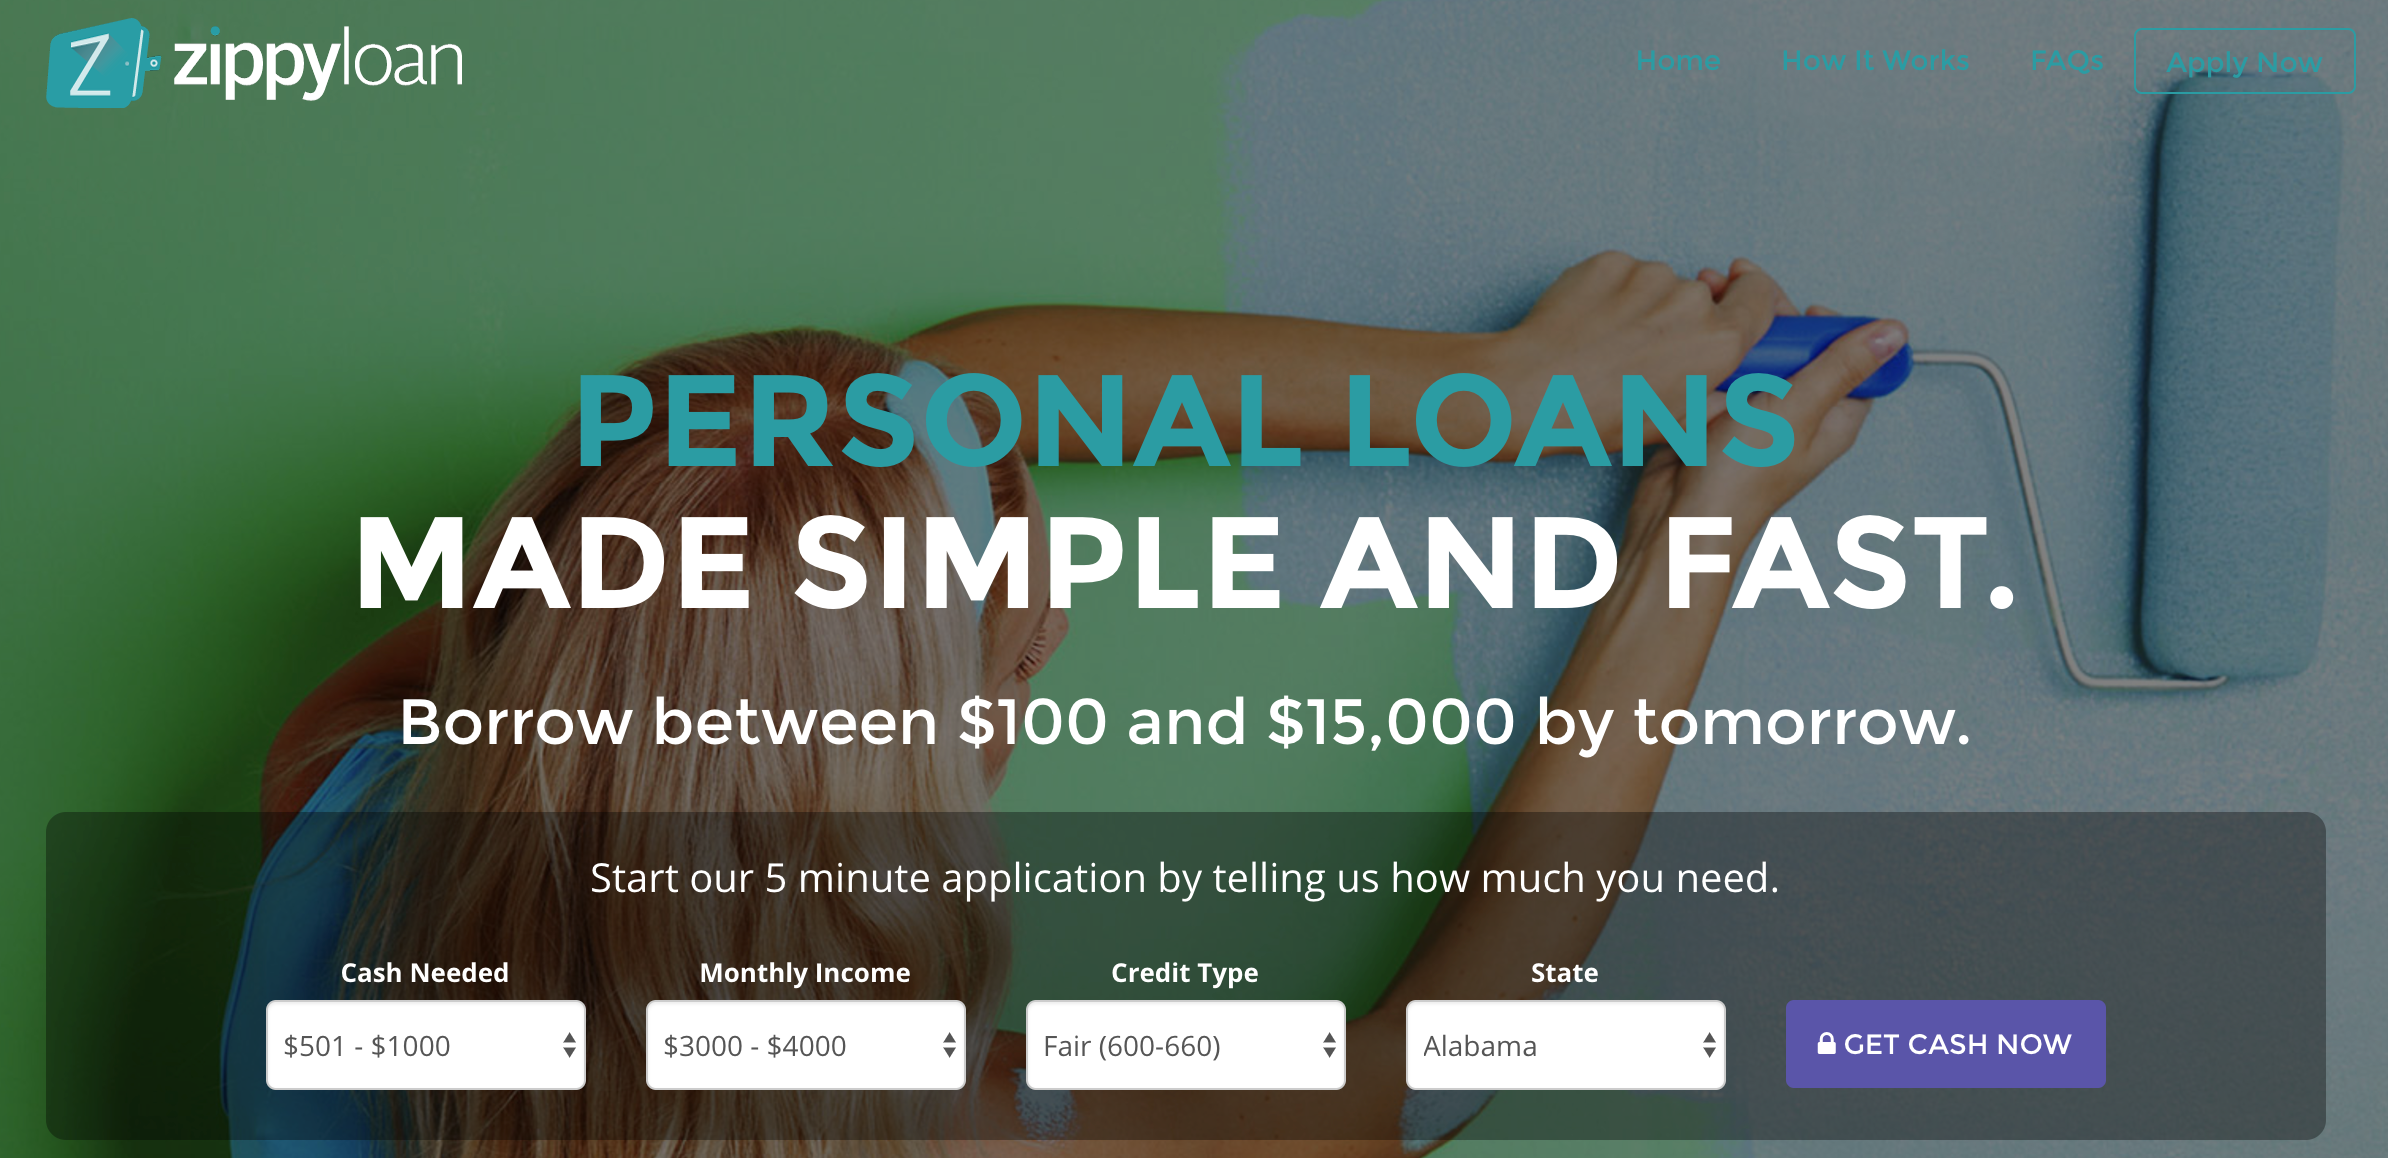 Zippy Loan Review – Better Service System For Personal Loans.